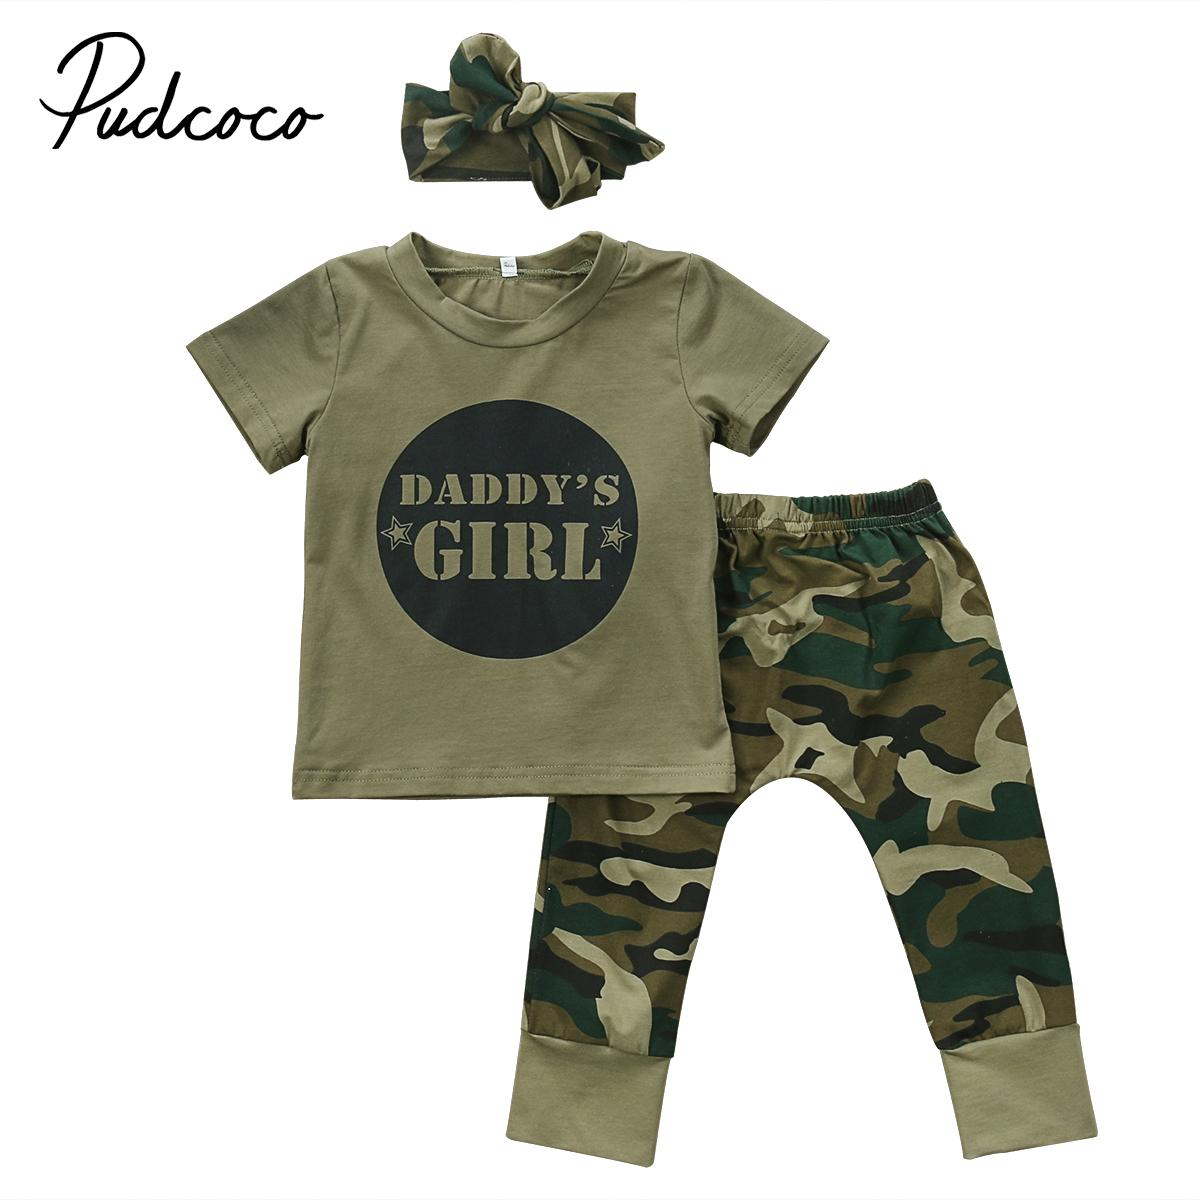 fc8db3d32b11a Summer Newborn Baby Boy Girls Camouflage T-shirt Tops+Pants Outfits Set  Clothes Army Green Children Letters Print Clothing 0-24M Y18120801